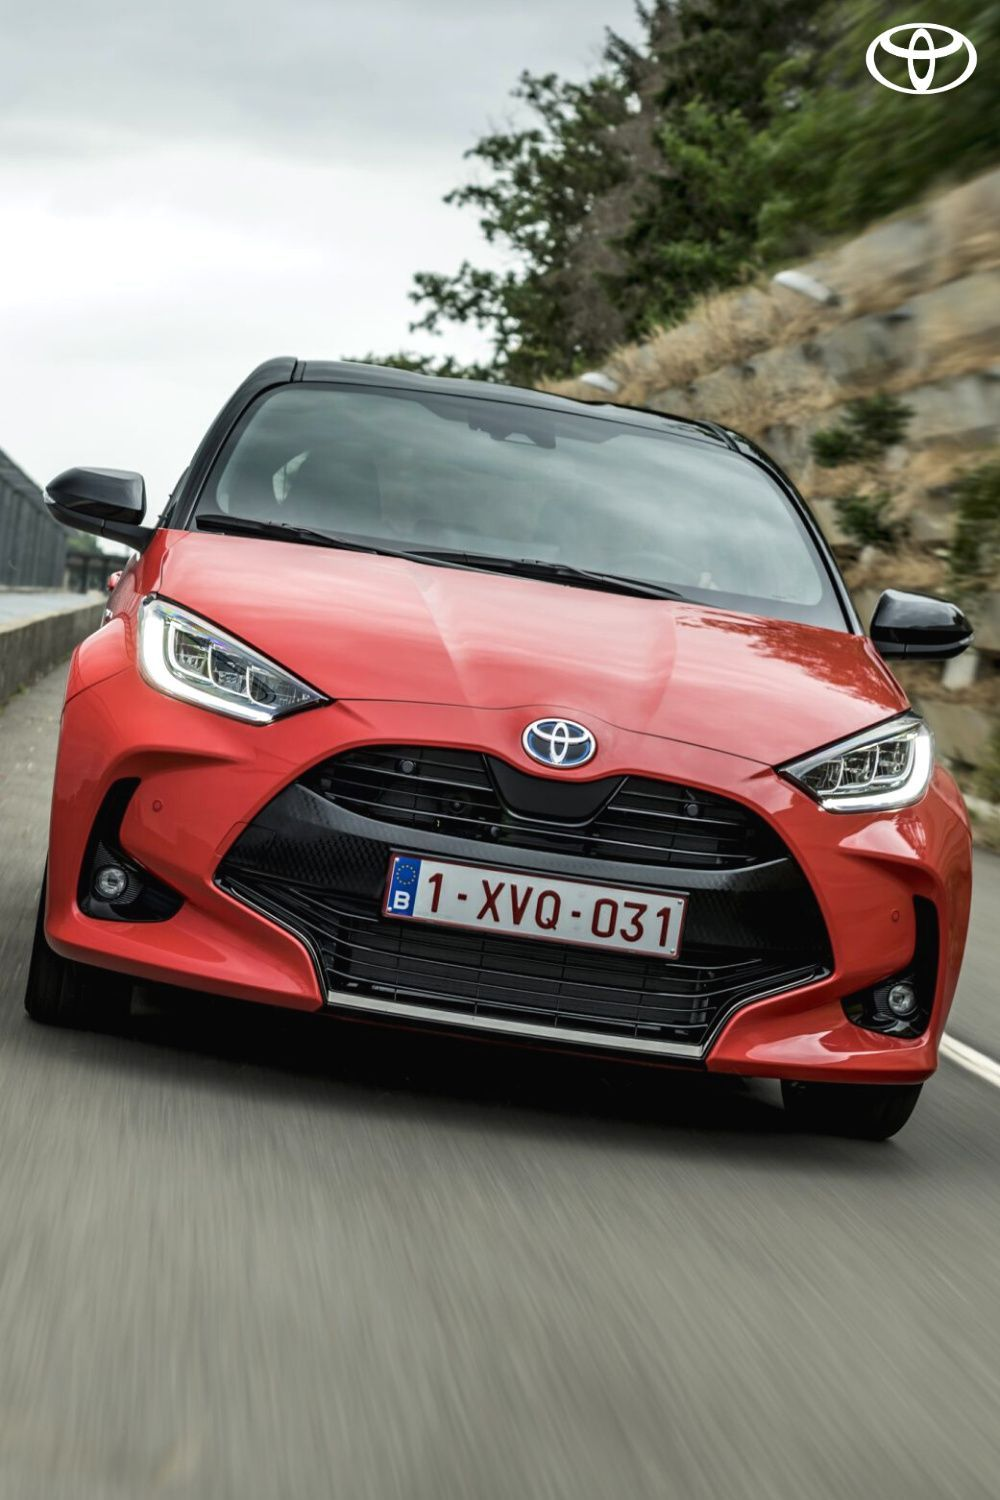 Introducing The All New Toyota Yaris Toyota Uk In 2020 Yaris Hybrid Car Toyota